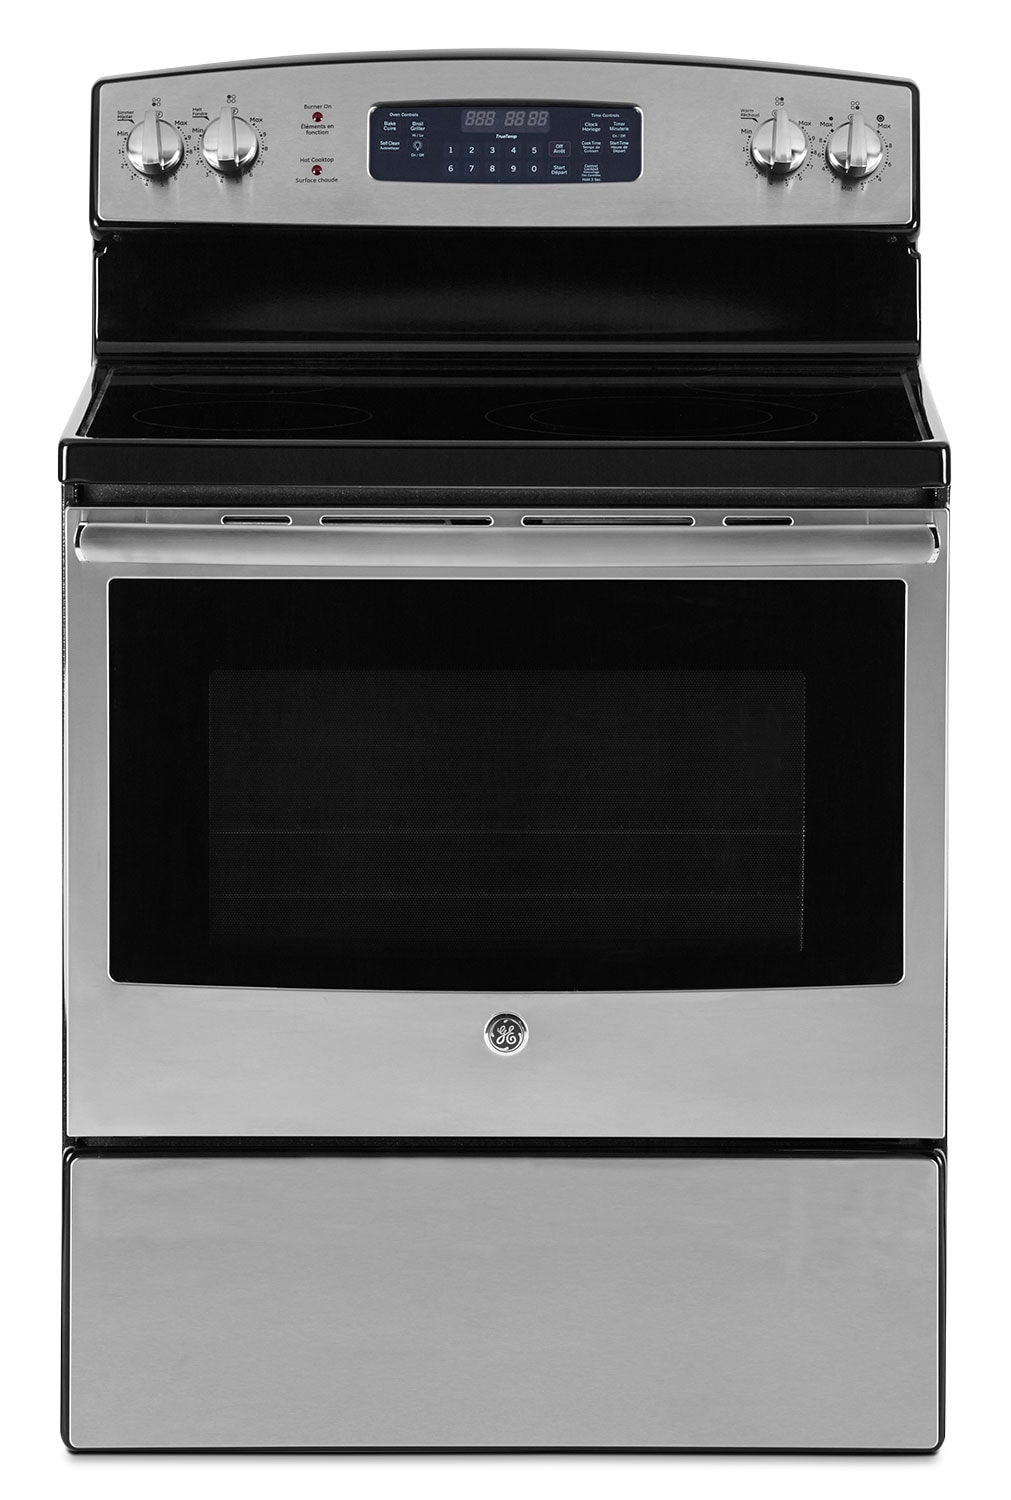 GE 5.0 Cu. Ft. Freestanding Electric Range – JCB730SJSS